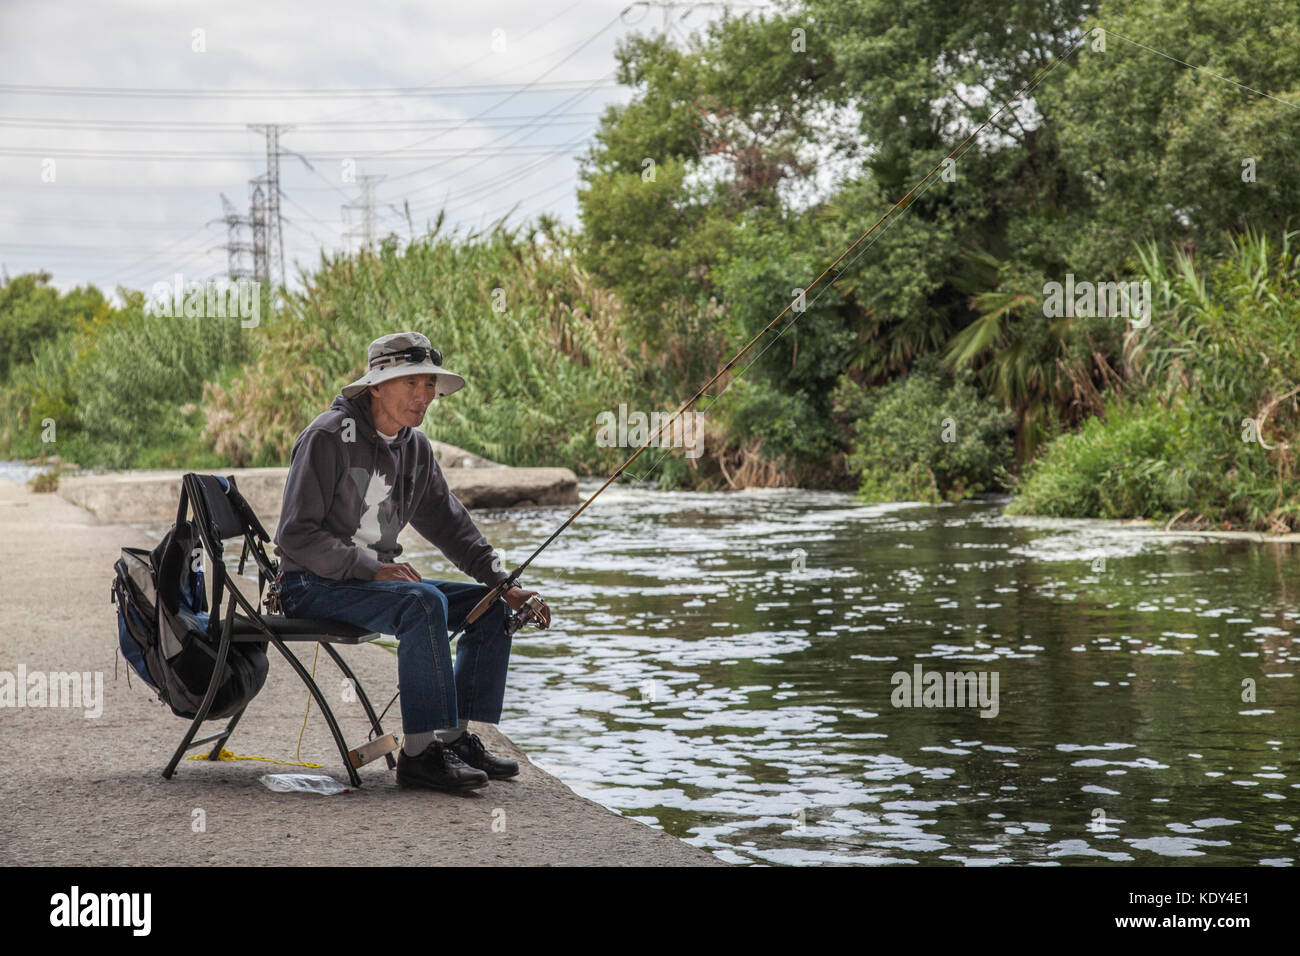 Elysian valley stock photos elysian valley stock images for Fishing los angeles